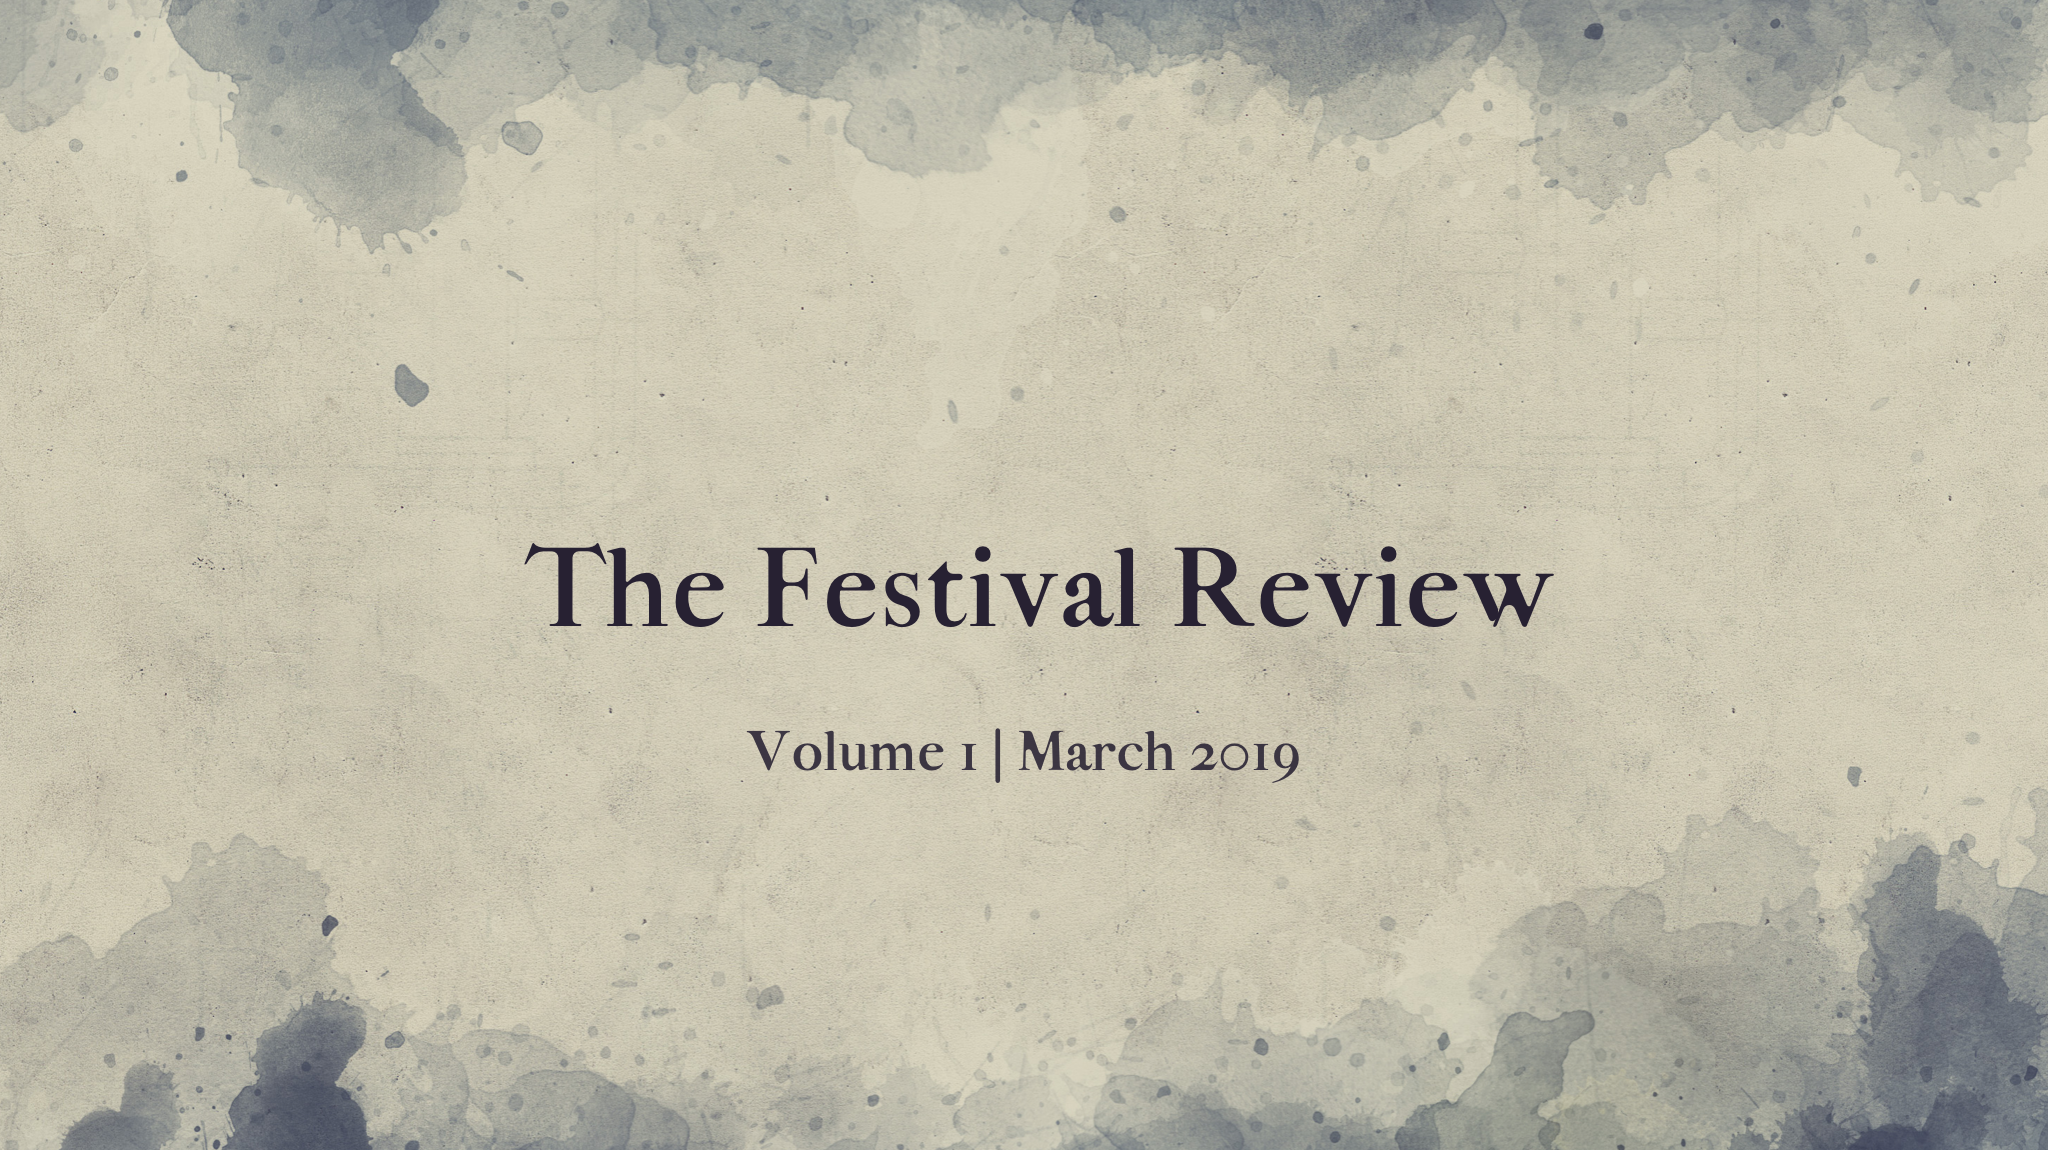 The Festival Review Volume 1 March 2019.png